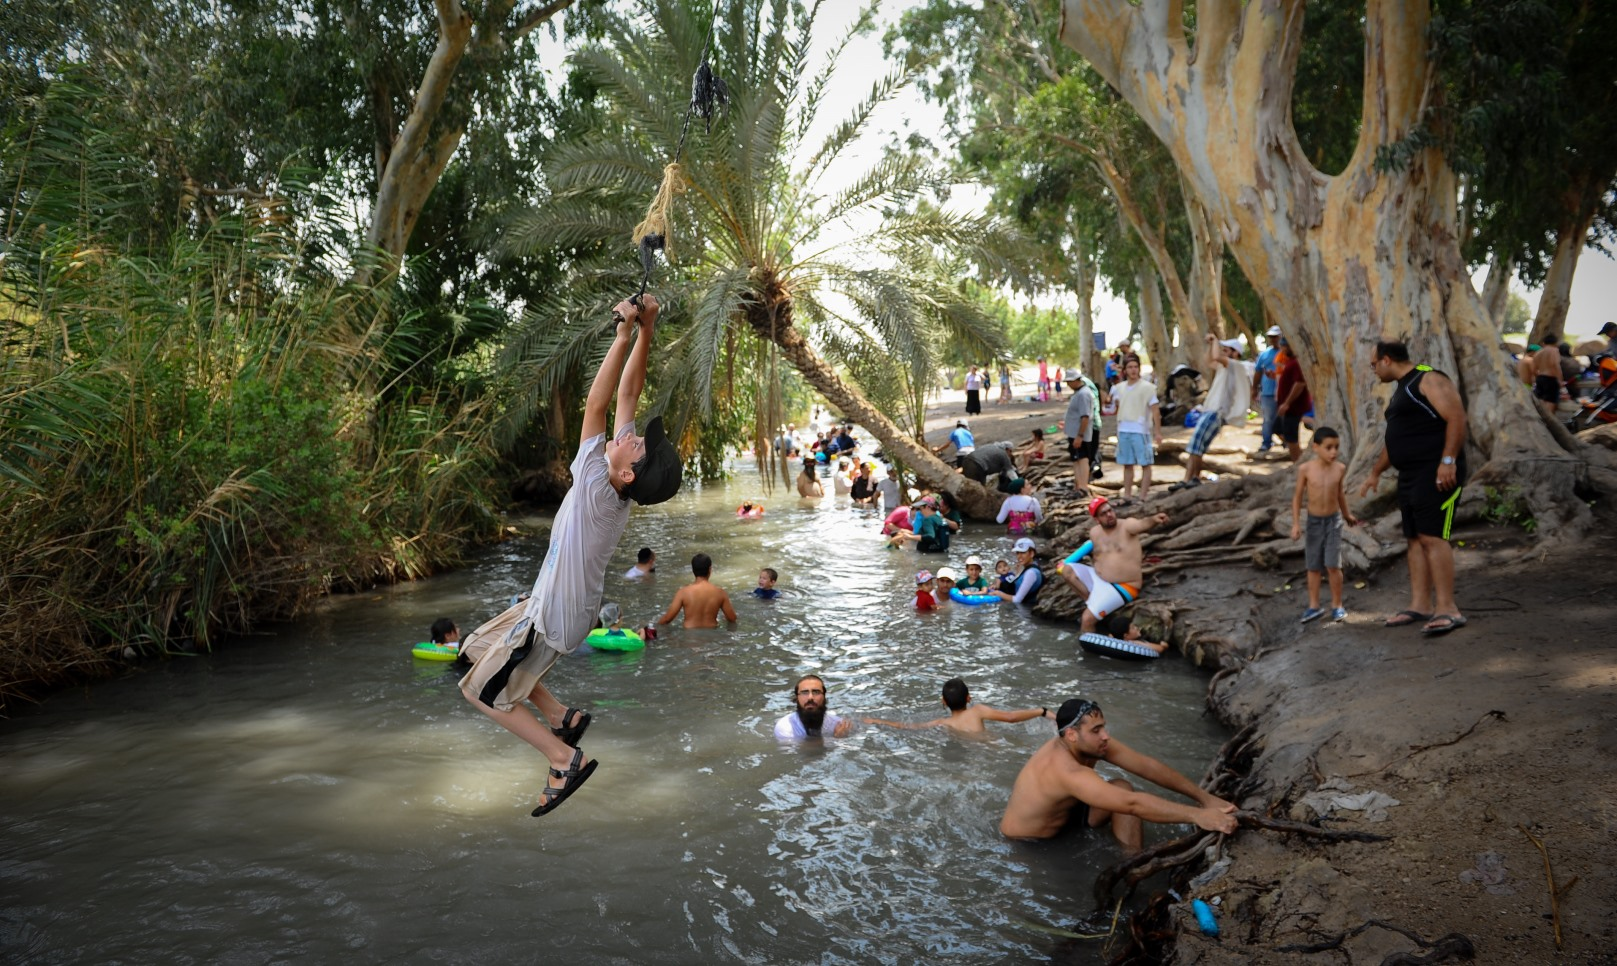 Israelis swim in a natural pool at Nahal Kibbutzim in Beit She'an, northern Israel. Photo by Mendy Hechtman/FLASH90